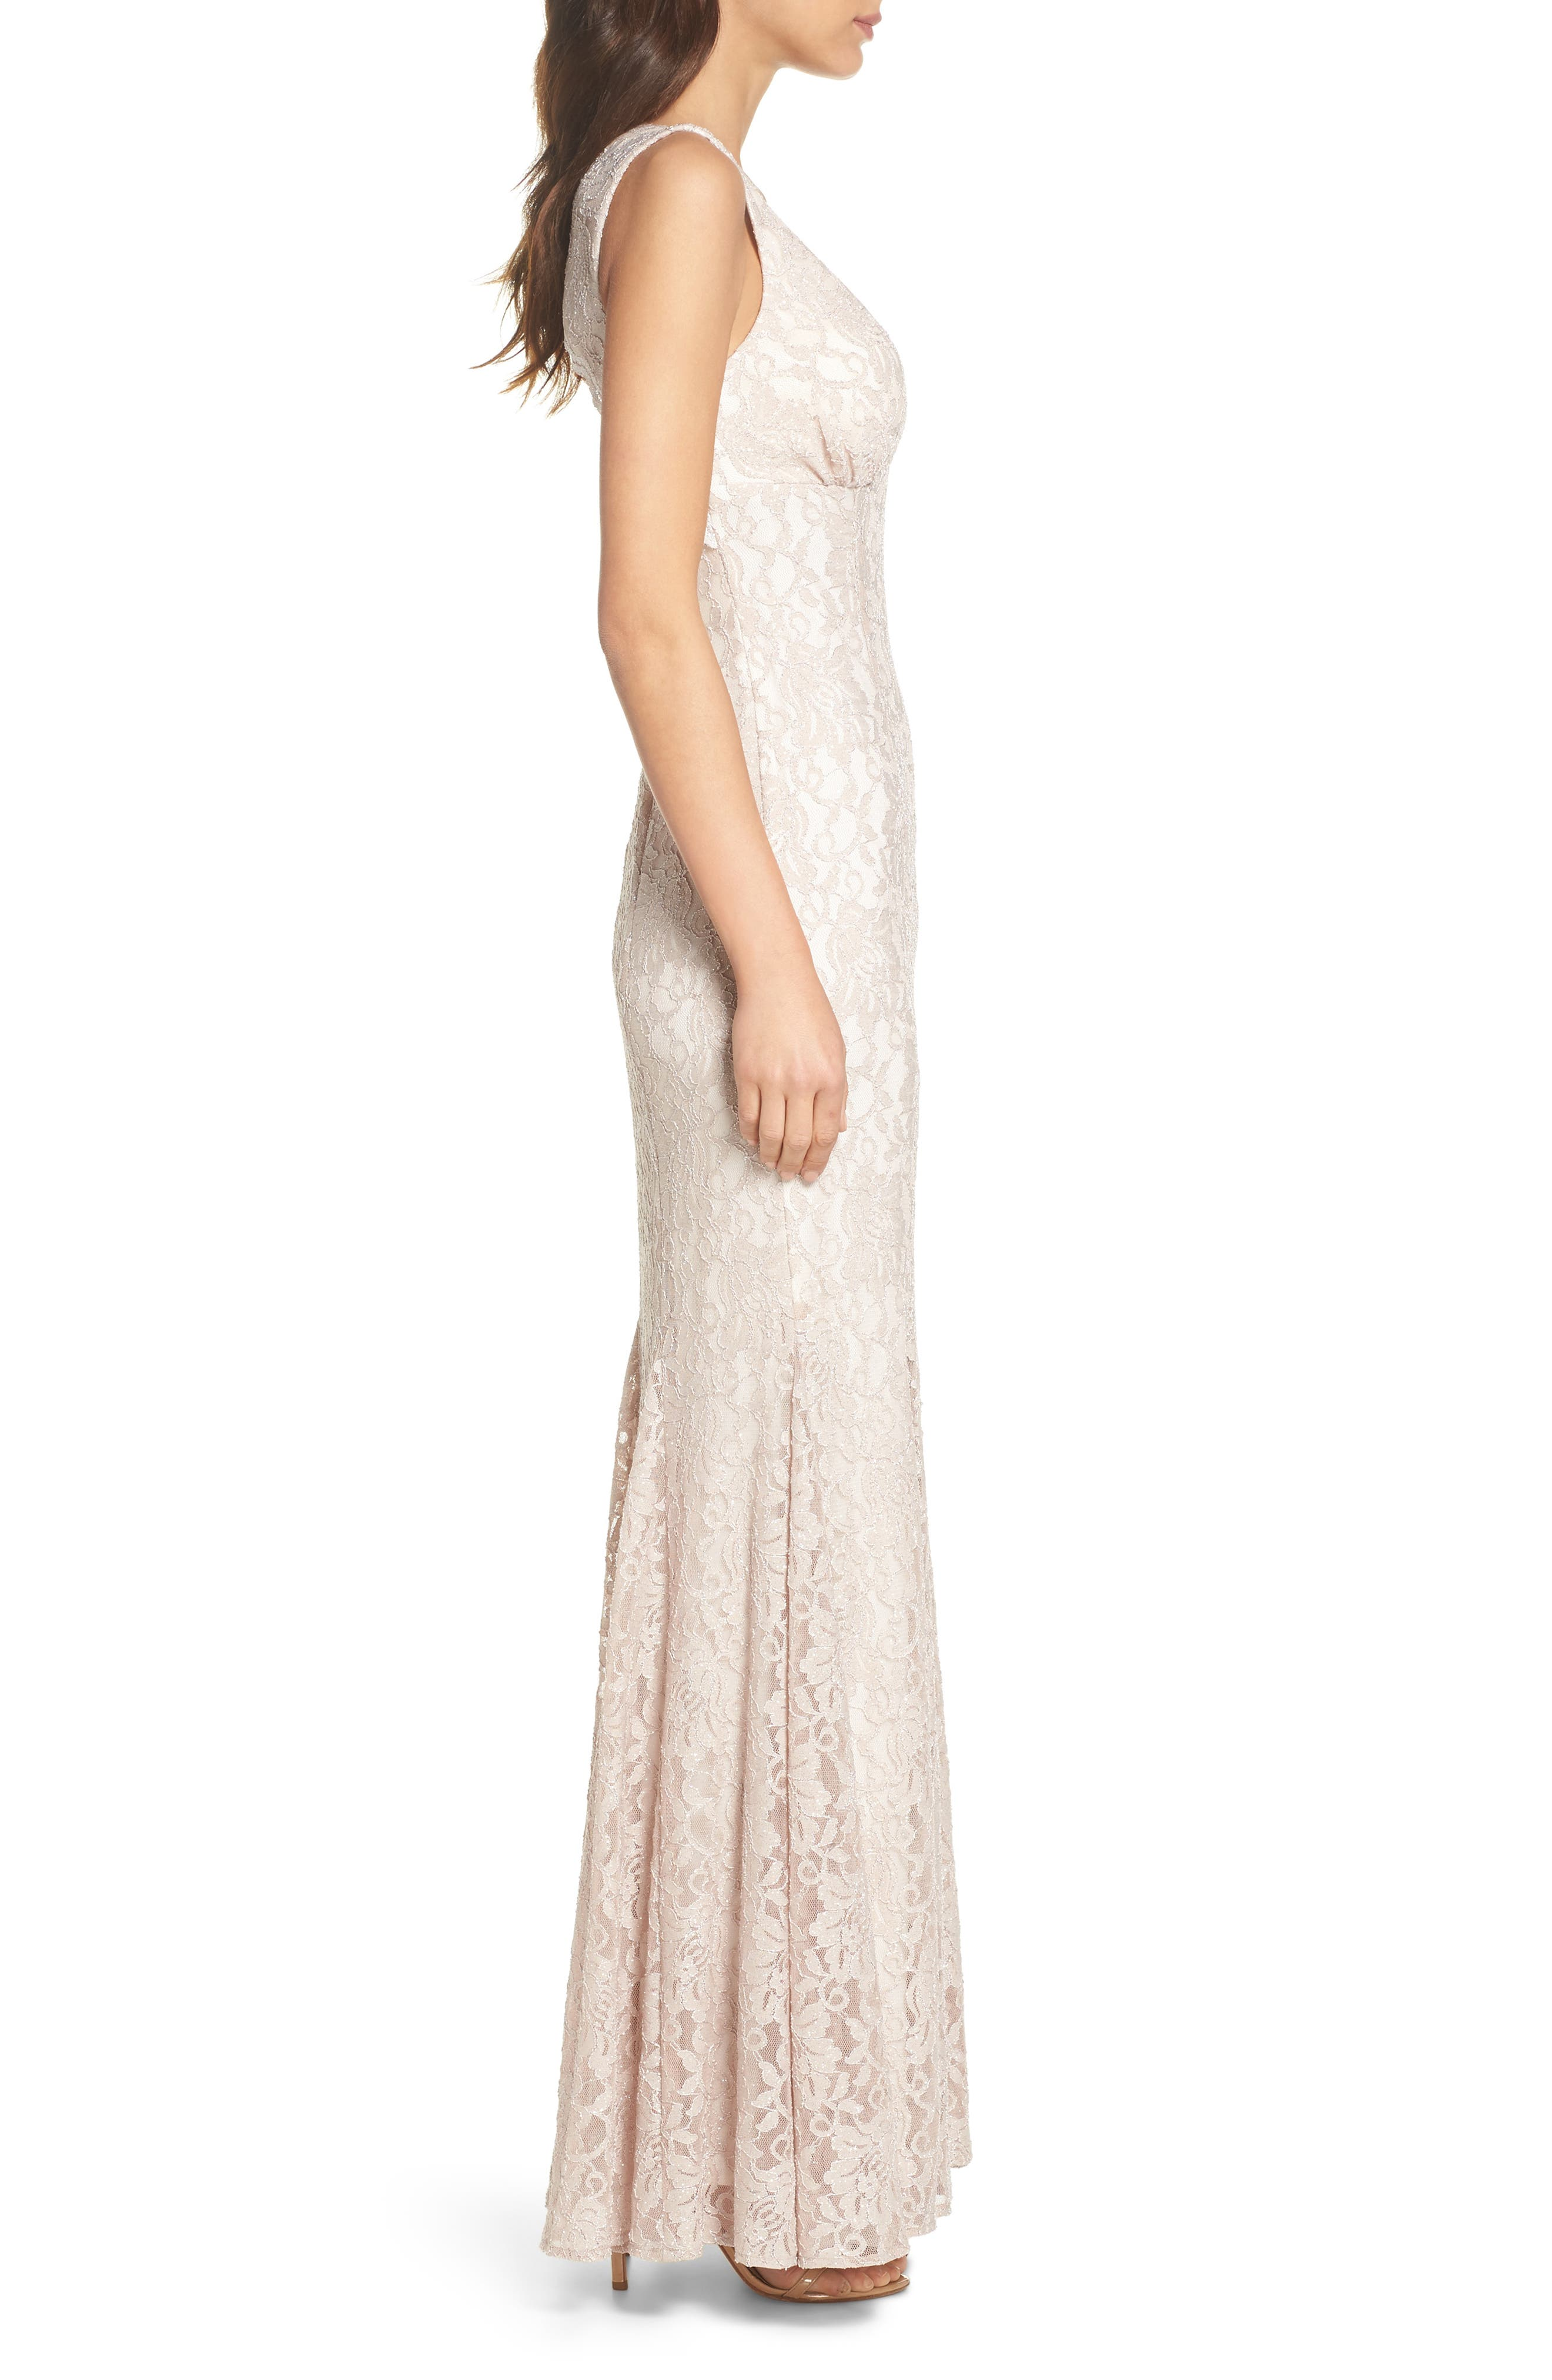 MORGAN & CO., Glitter Lace Trumpet Dress, Alternate thumbnail 3, color, CHAMPAGNE / IVORY